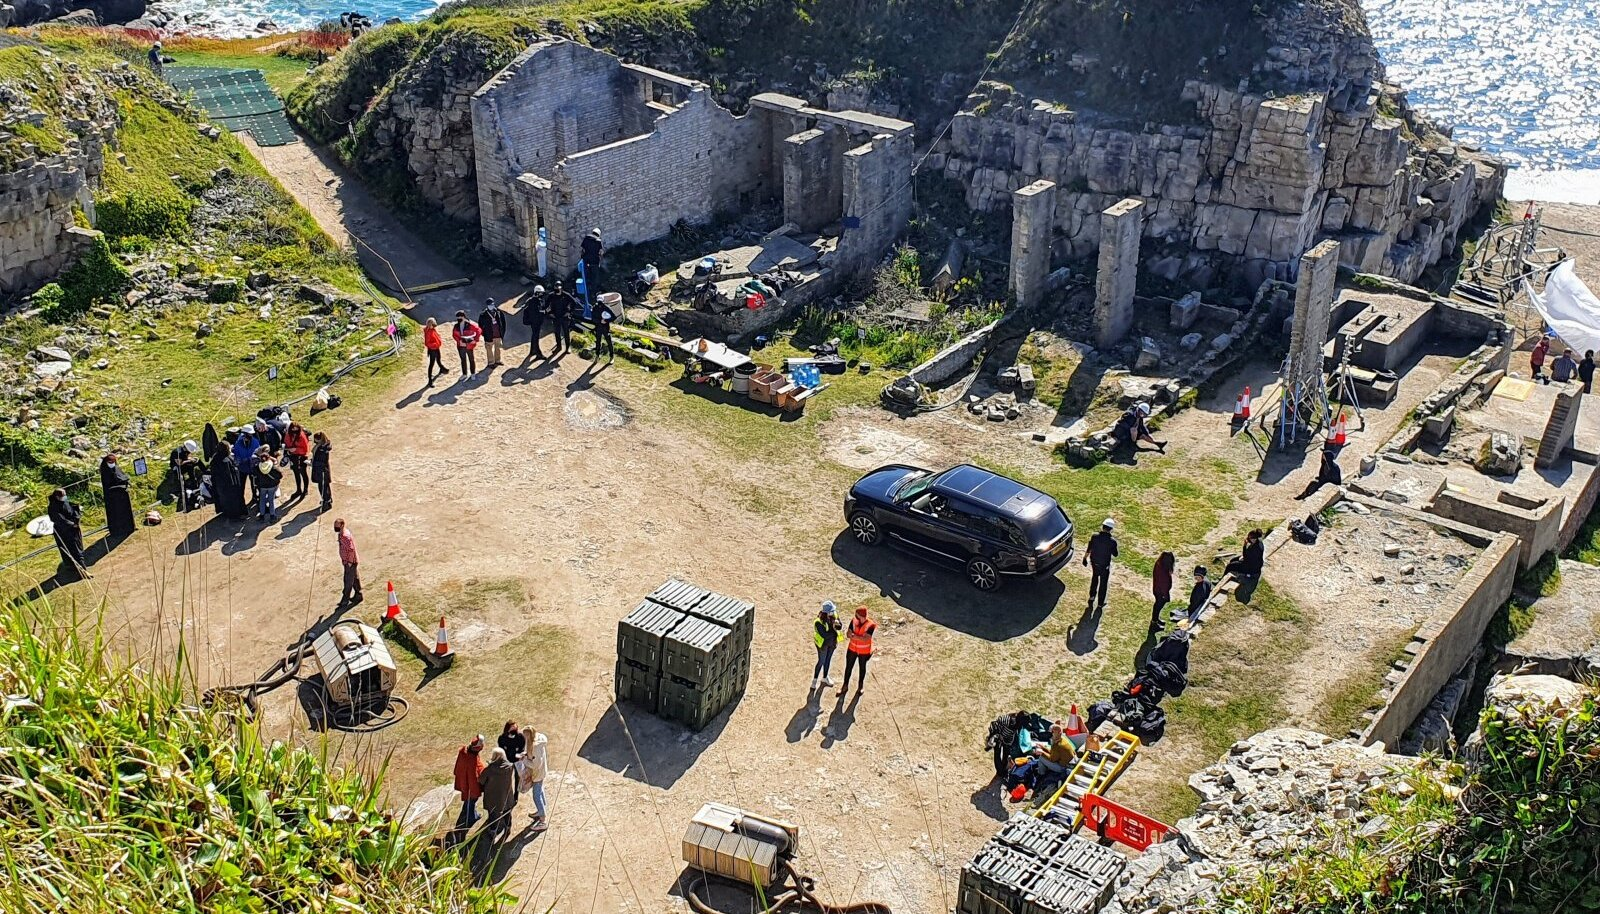 Filming of new Star Wars series in Dorset